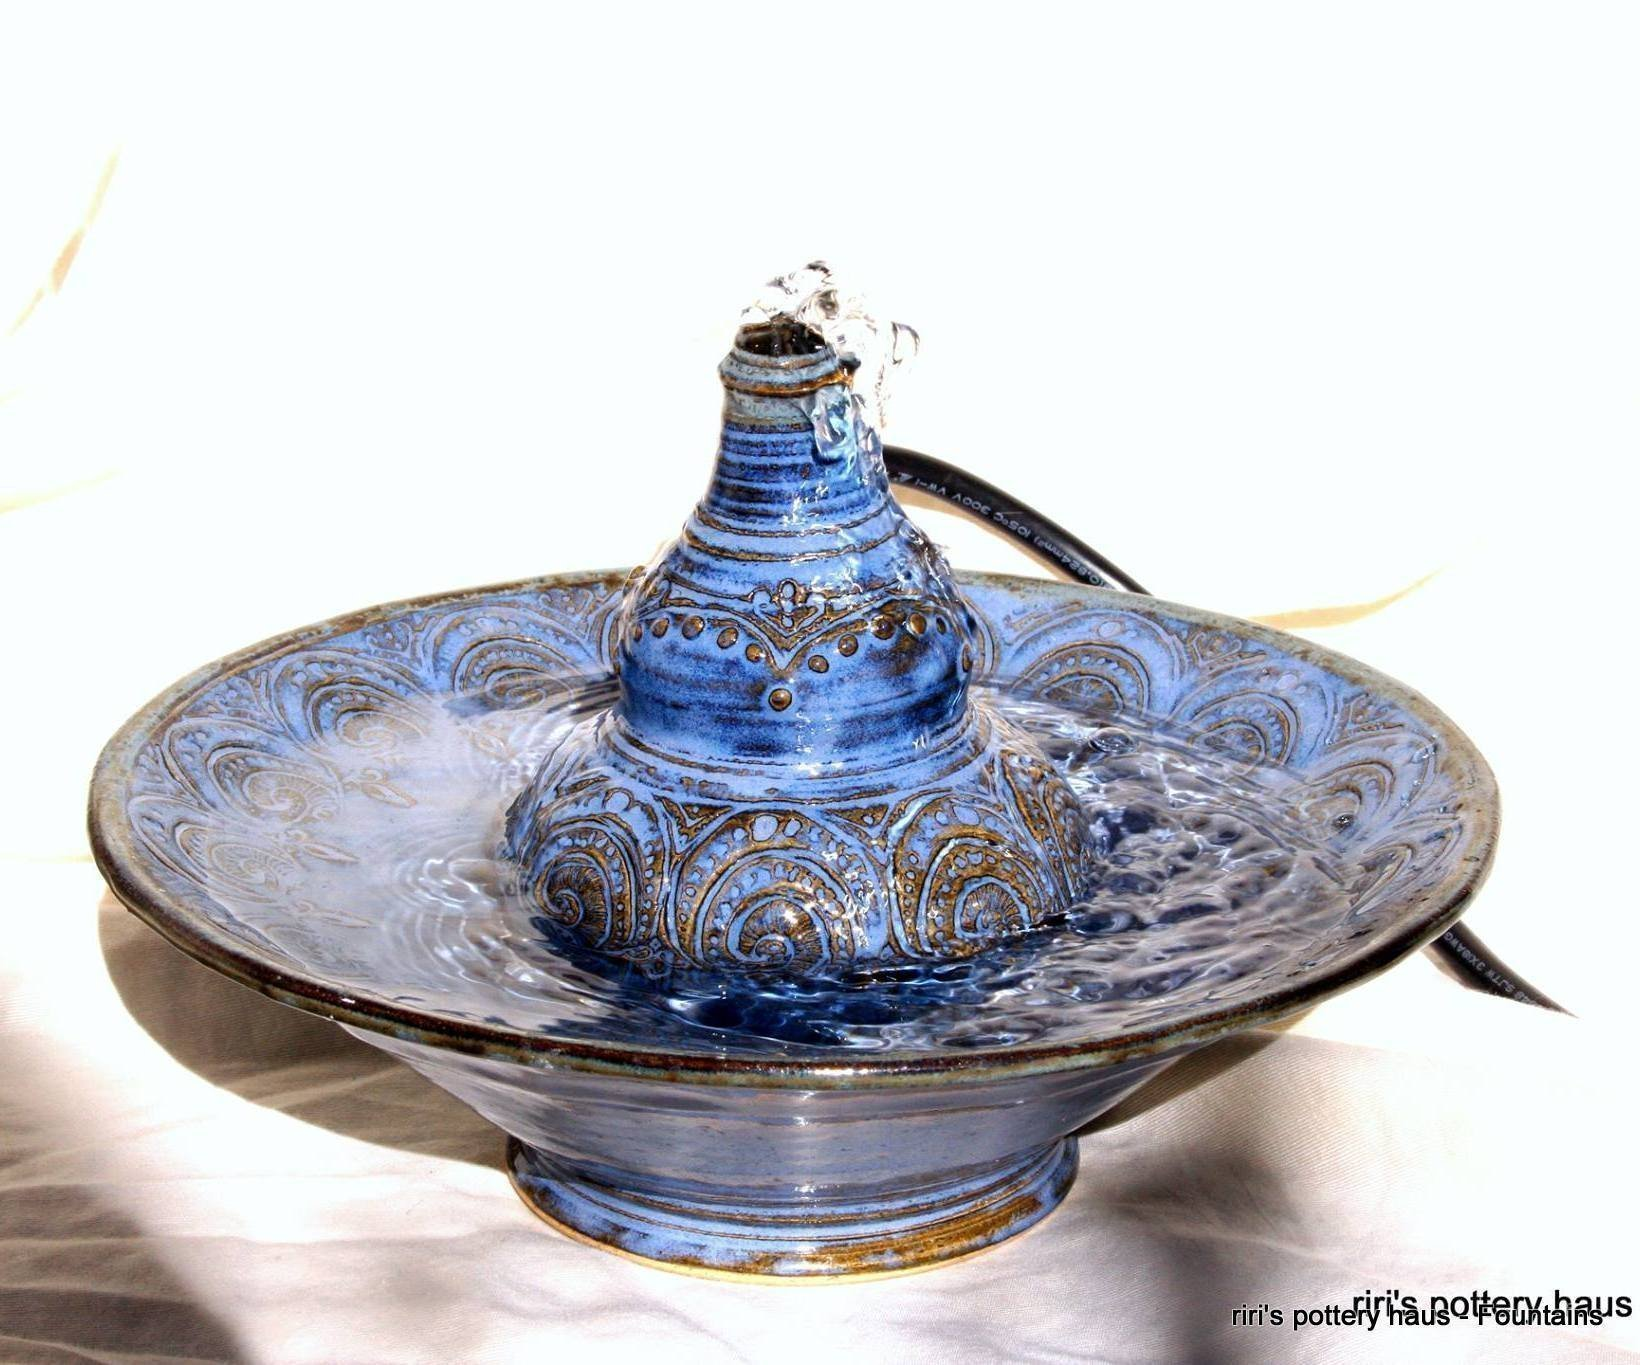 Custom small wheel-thrown stoneware tabletop or cat fountain - a soothing dose of tabletop serenity!